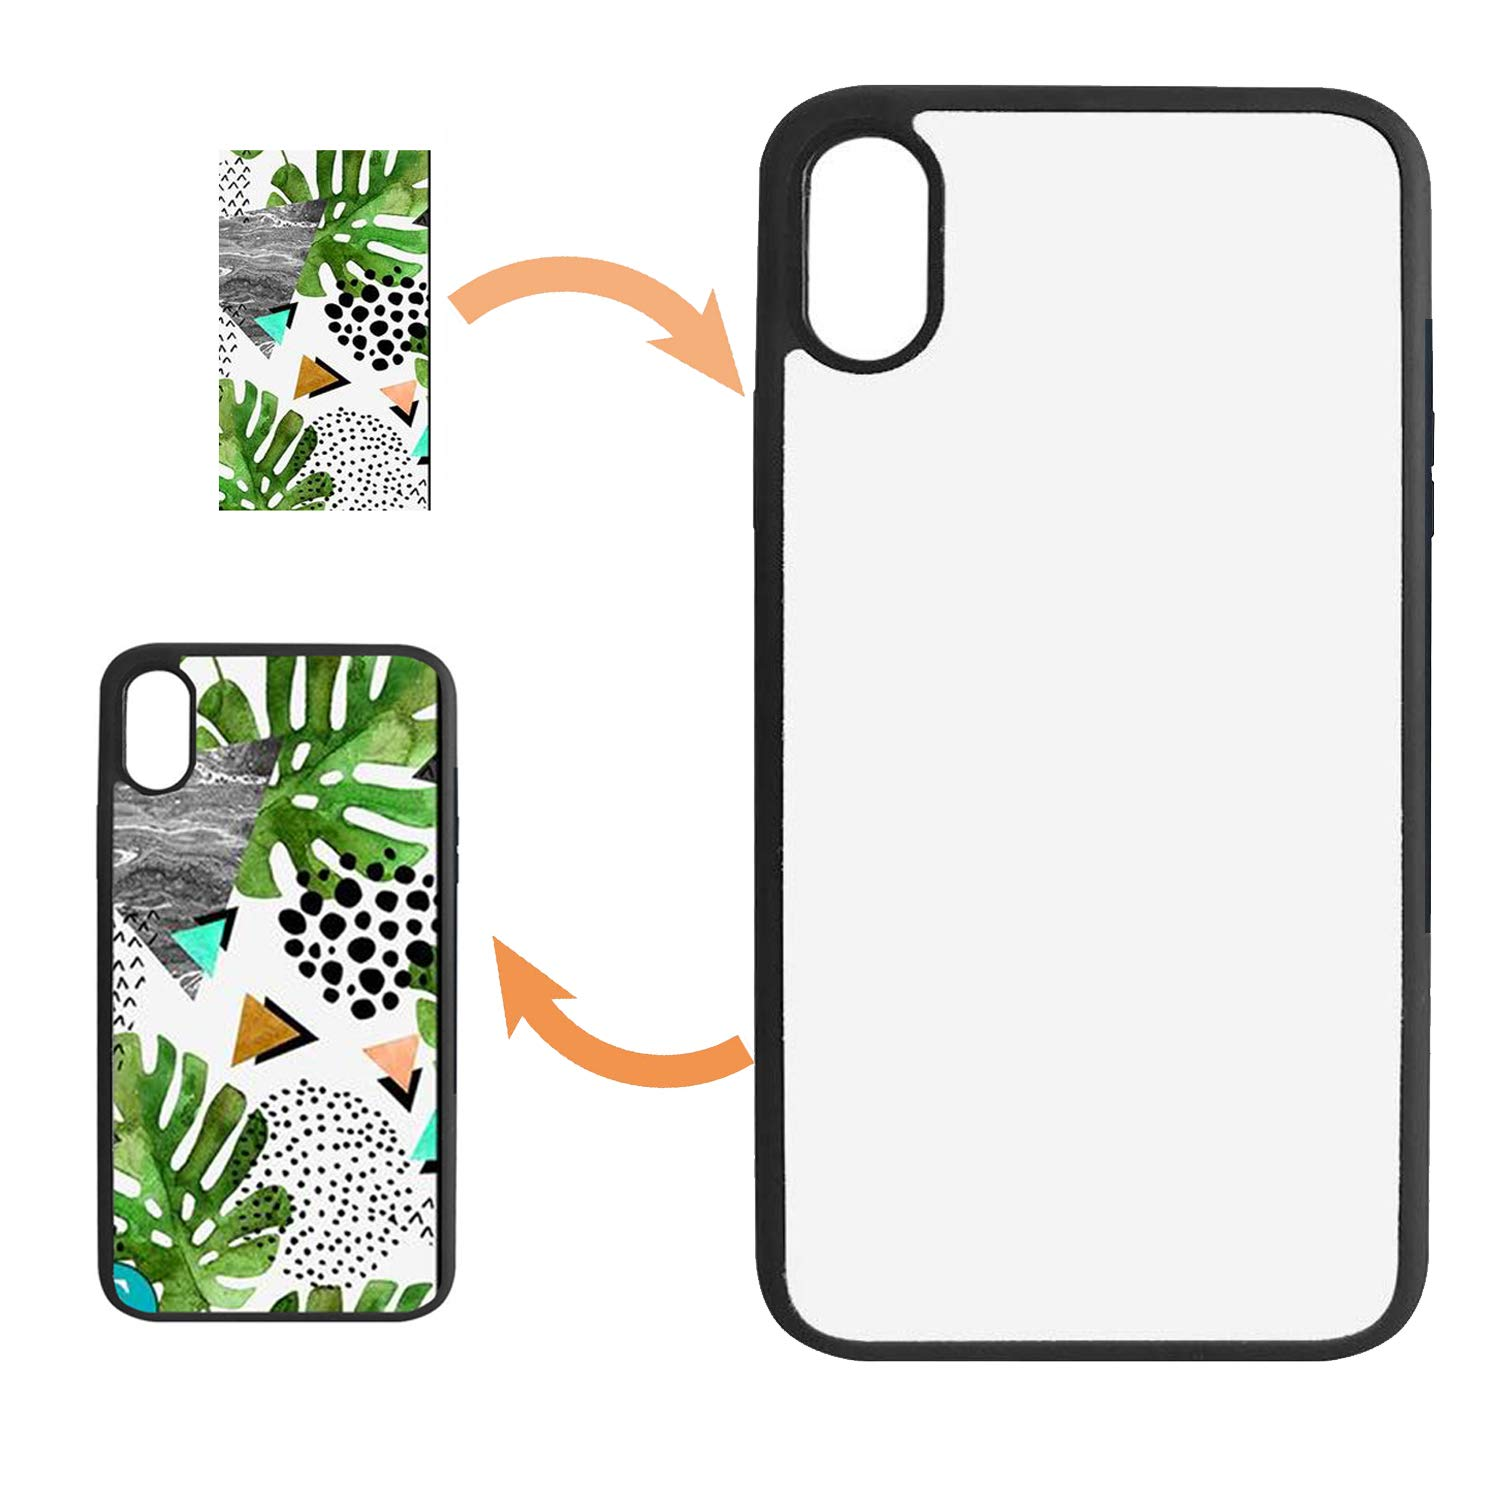 JUSTRY 10PCS Sublimation Blanks Phone Case Cases Anti-Scratch Covers Compatible with Apple iPhone XR 6.1 Inch. Blank Printable Phone Case for DIY Soft Rubber Cool Polish DIY Phone Case Glitter Finish